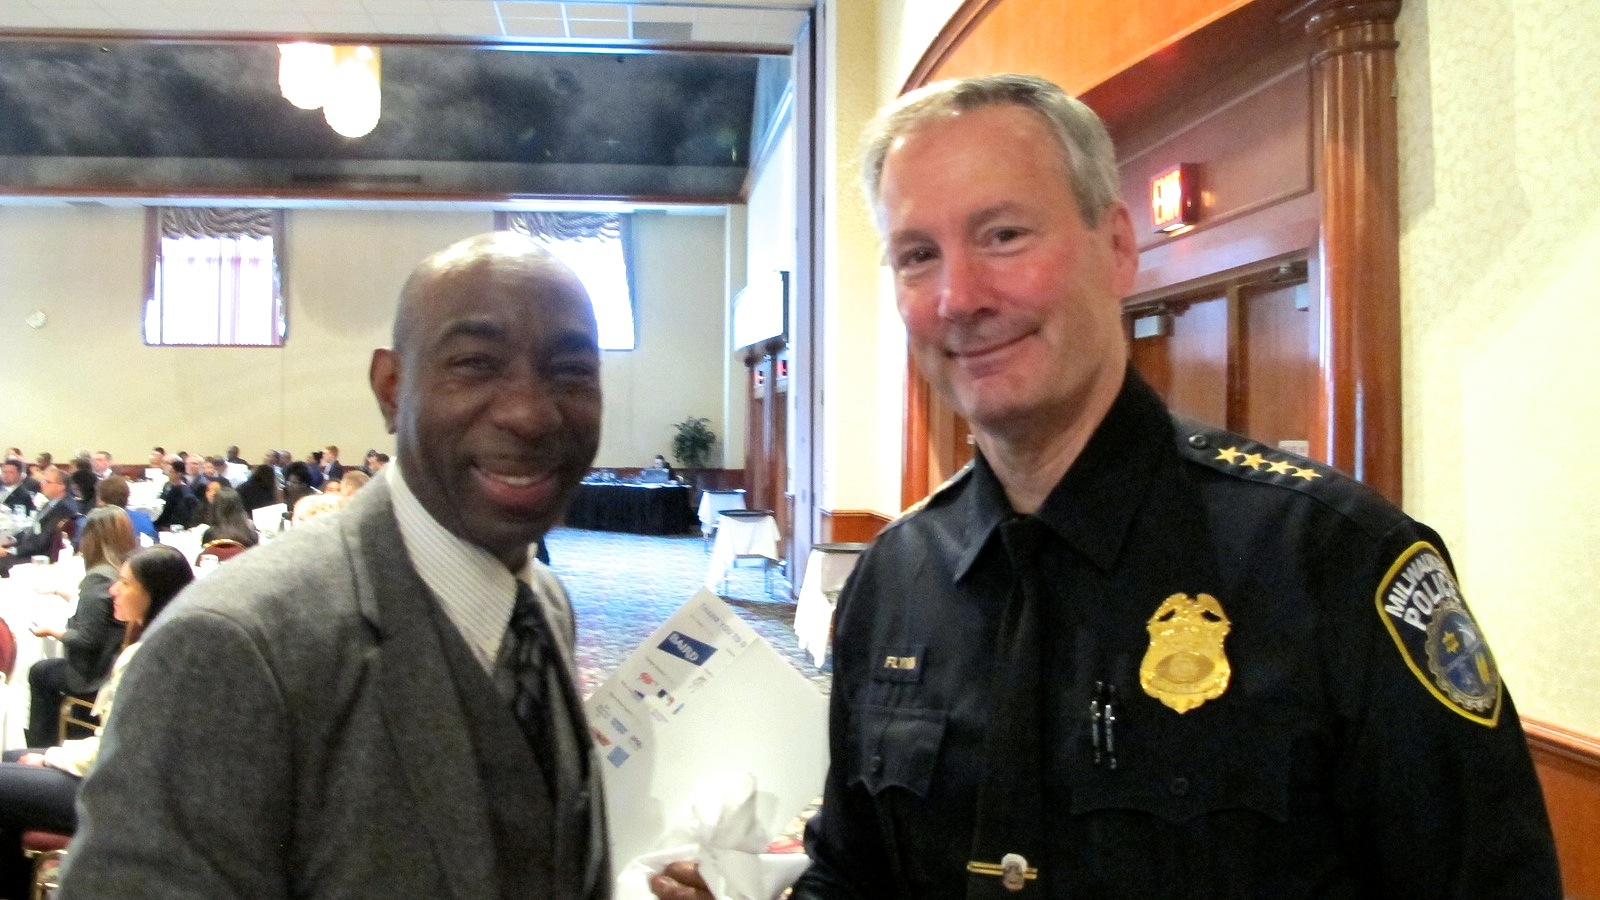 Charles Robinson with Milwaukee Police Chief Edward Flynn this week at the Safe & Sound Annual Awards Breakfast at the Italian Community Center. (Photo by Andrea Waxman)